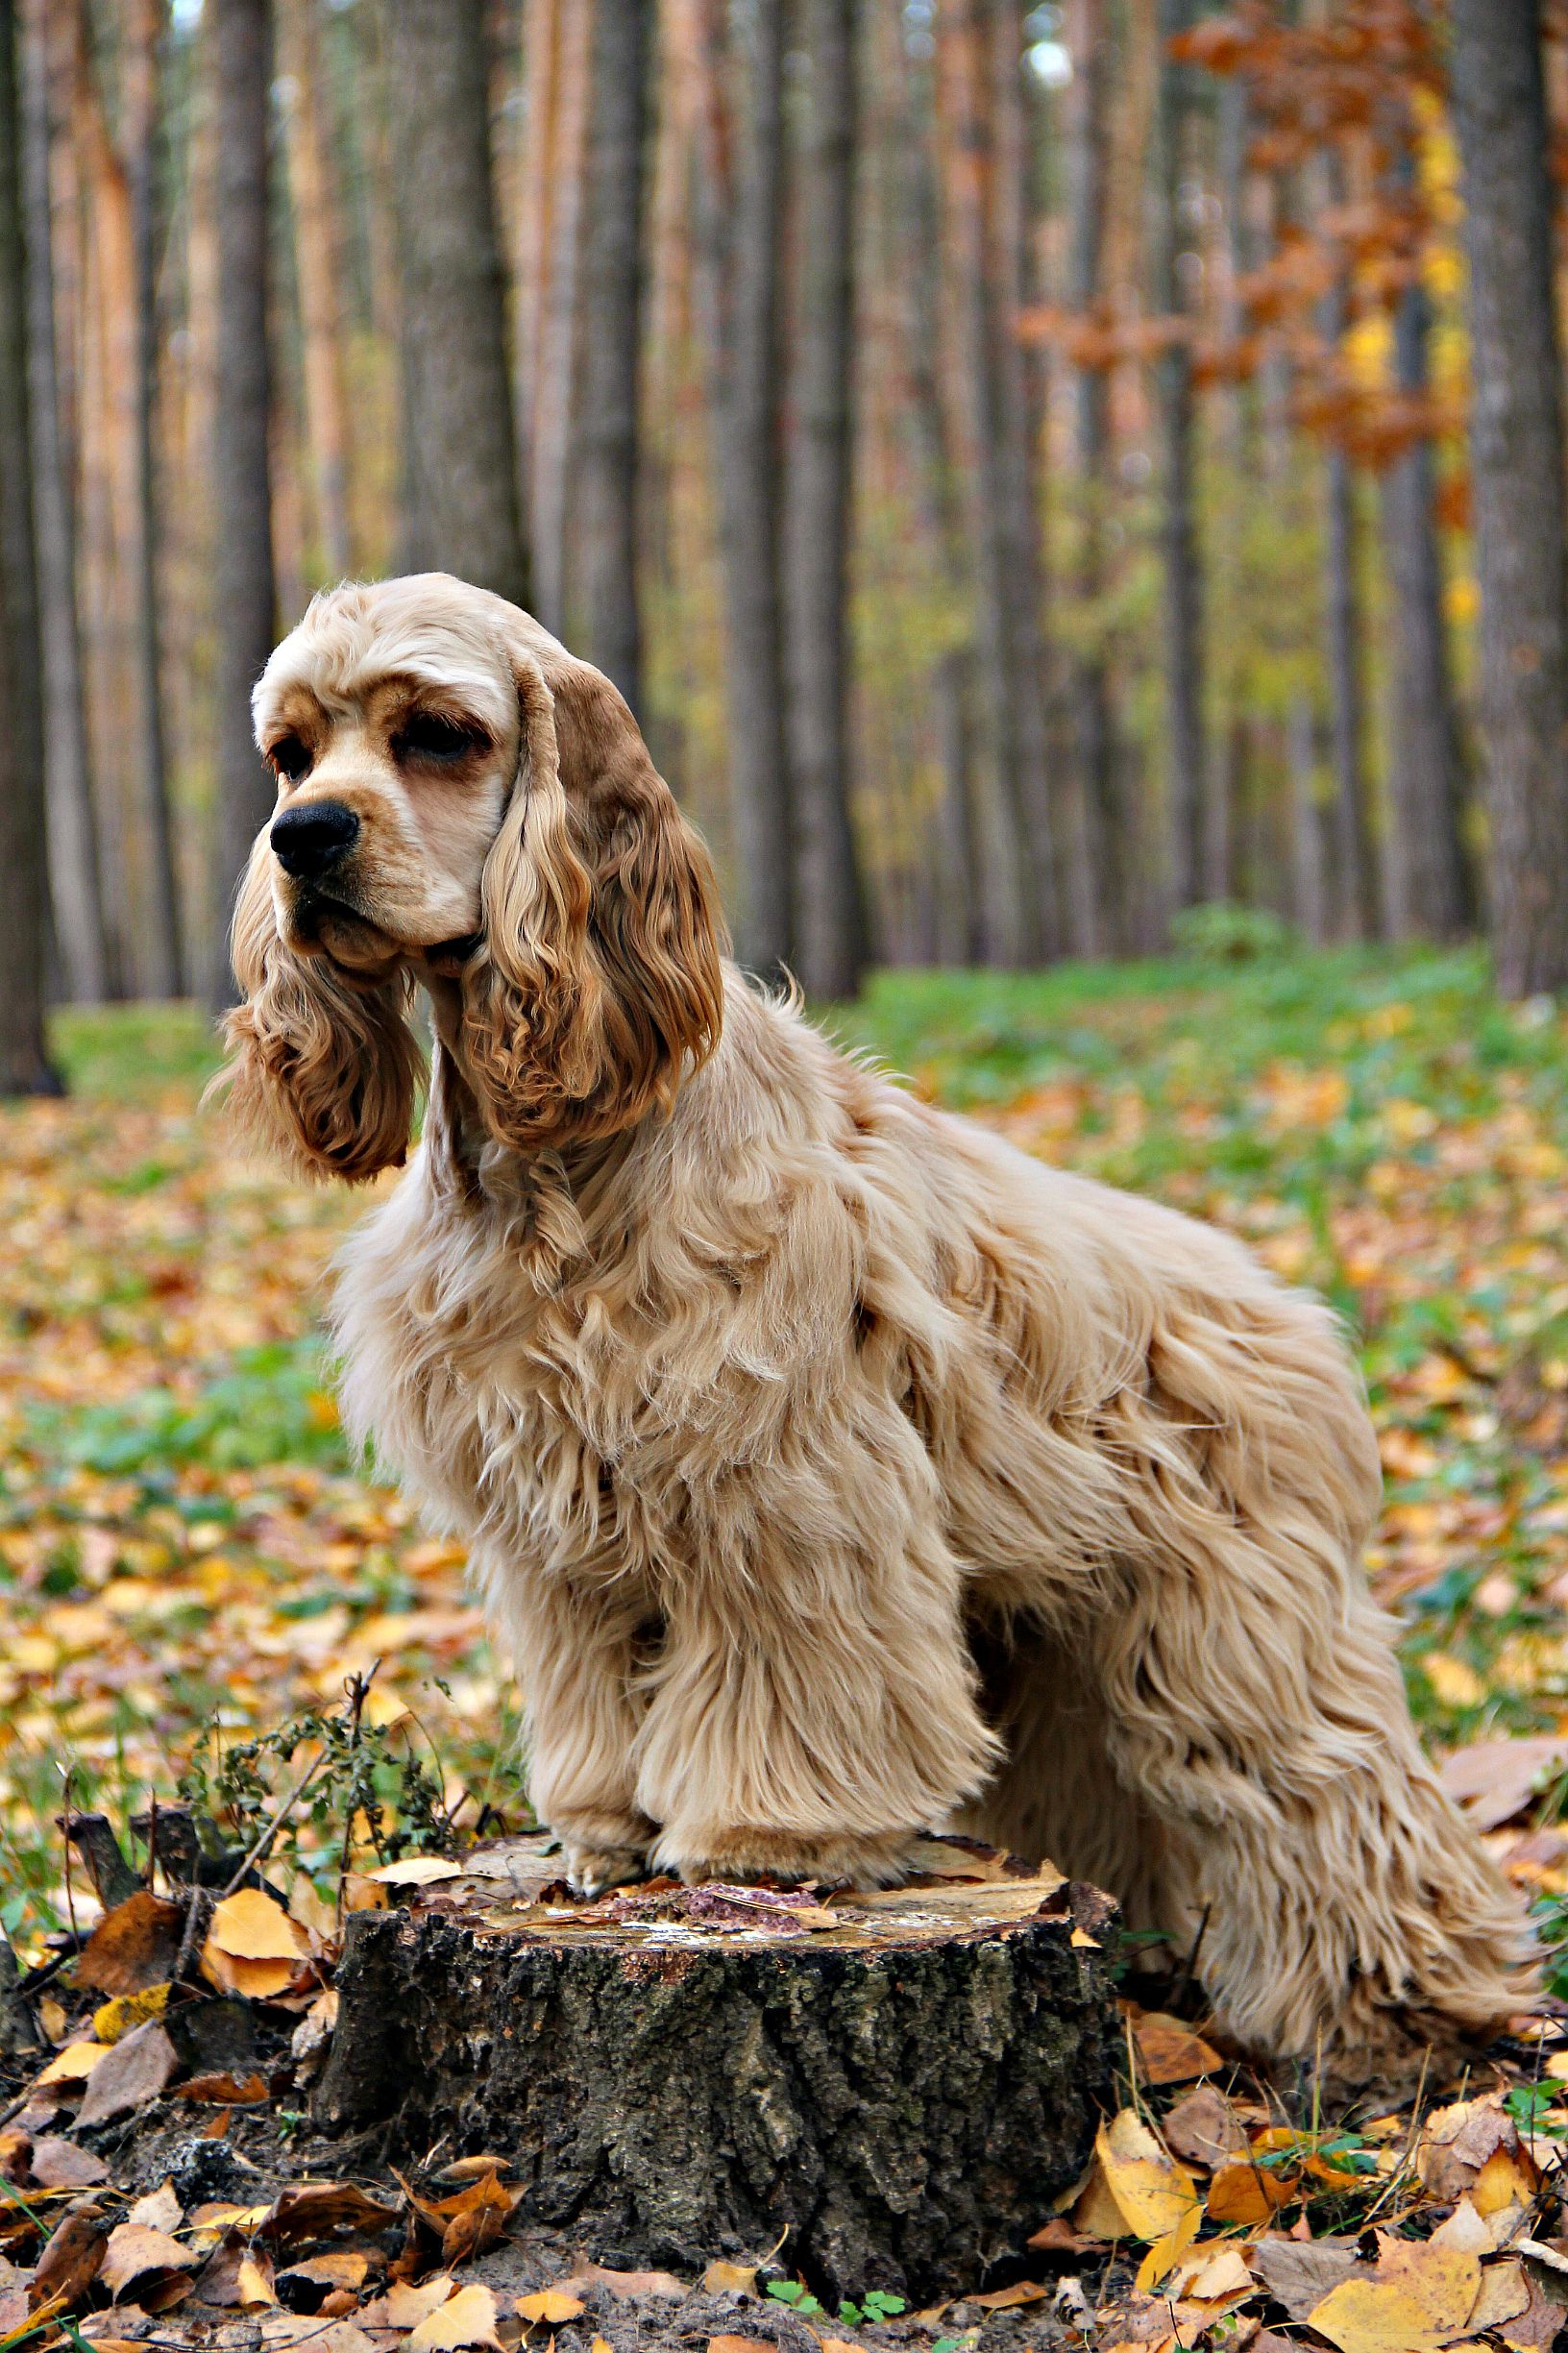 Enjoy The Autumn With An American Cocker Spaniel Puppy Cocker